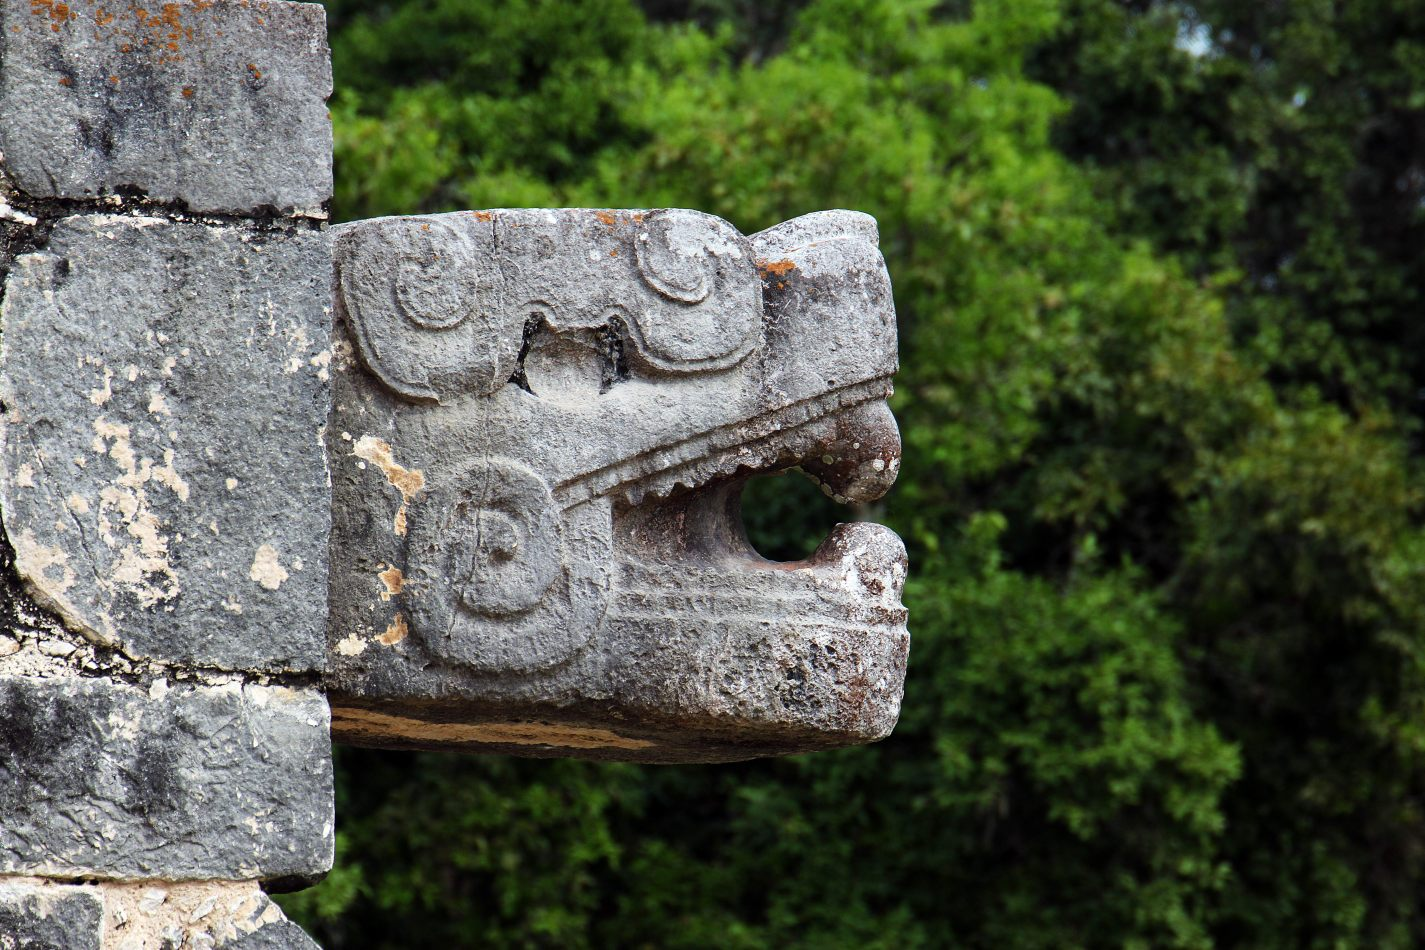 Anthony Ellis Photography: Small Sacrifices - The Feathered Serpent